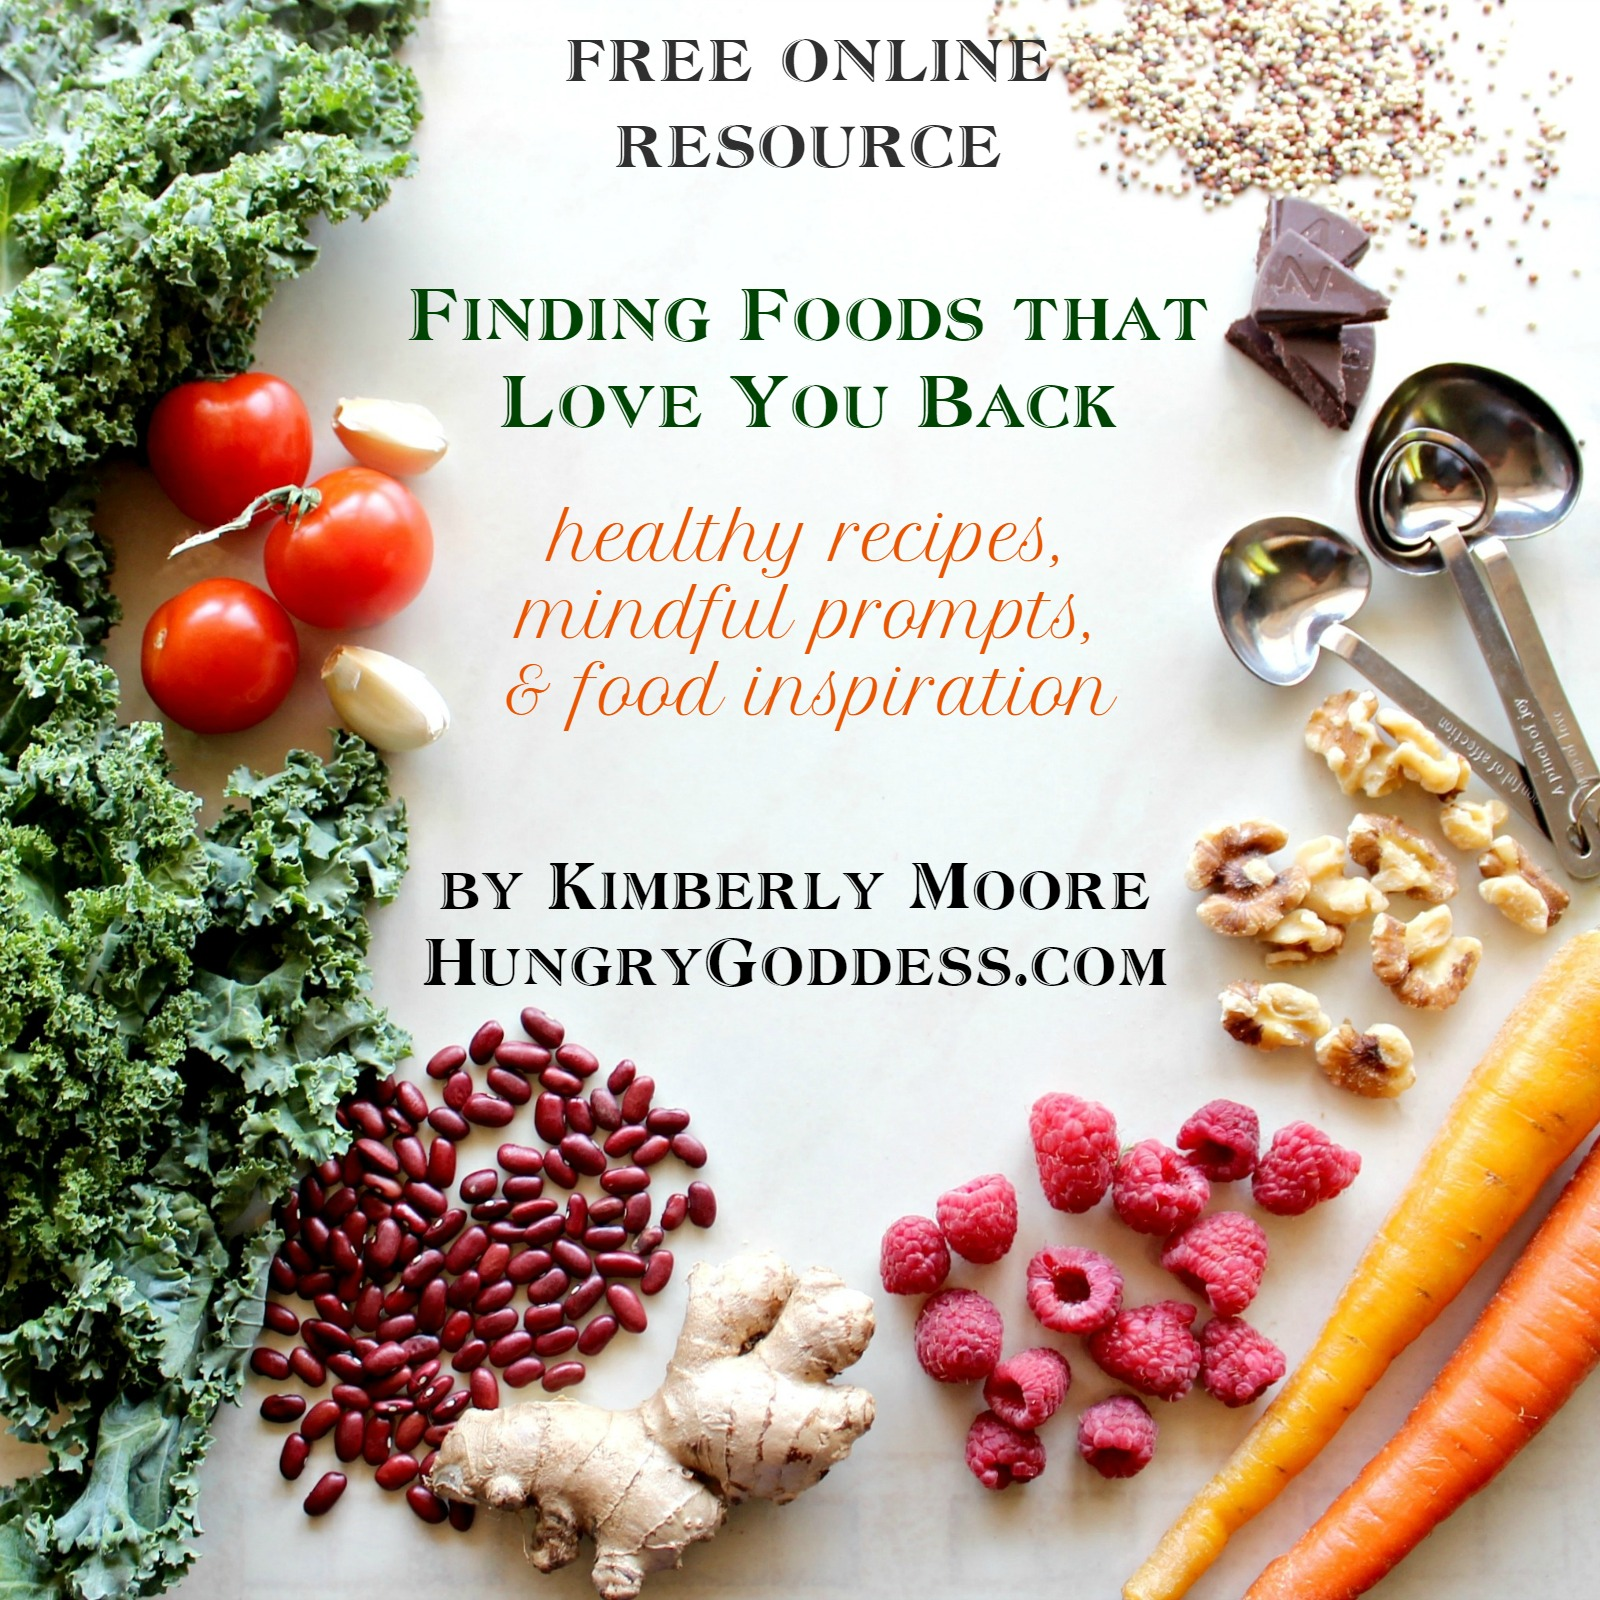 Finding Foods that Love You Back Free Online Resource by Kimberly Moore The Hungry Goddess